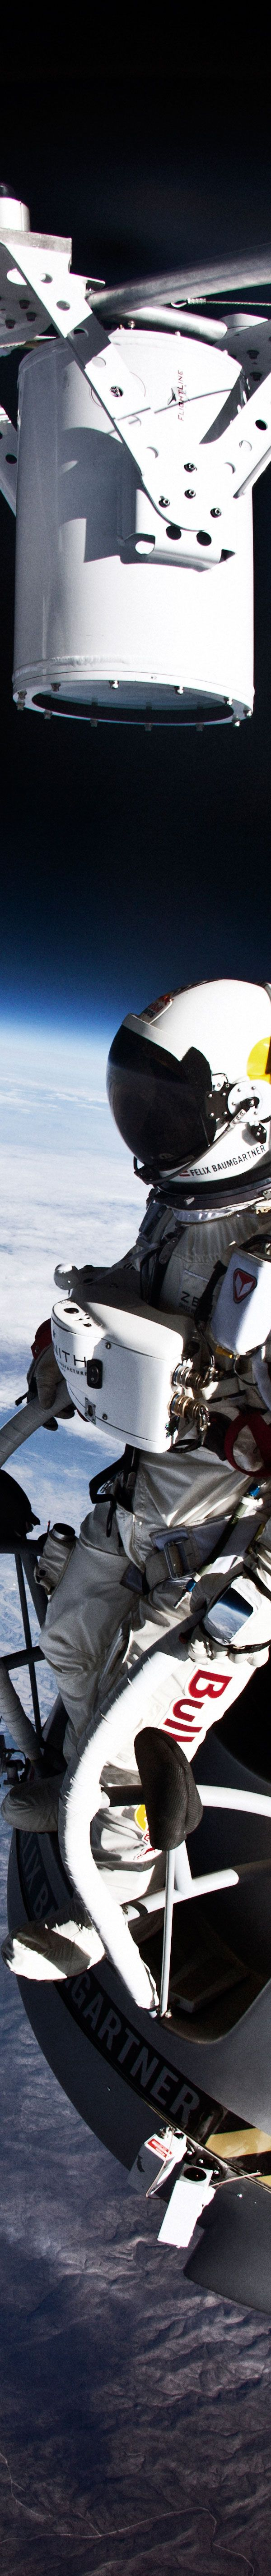 The First Human To Break The Speed Of Sound In A Free Fall...Felix-Baumgartner  ....And he's FINE too!